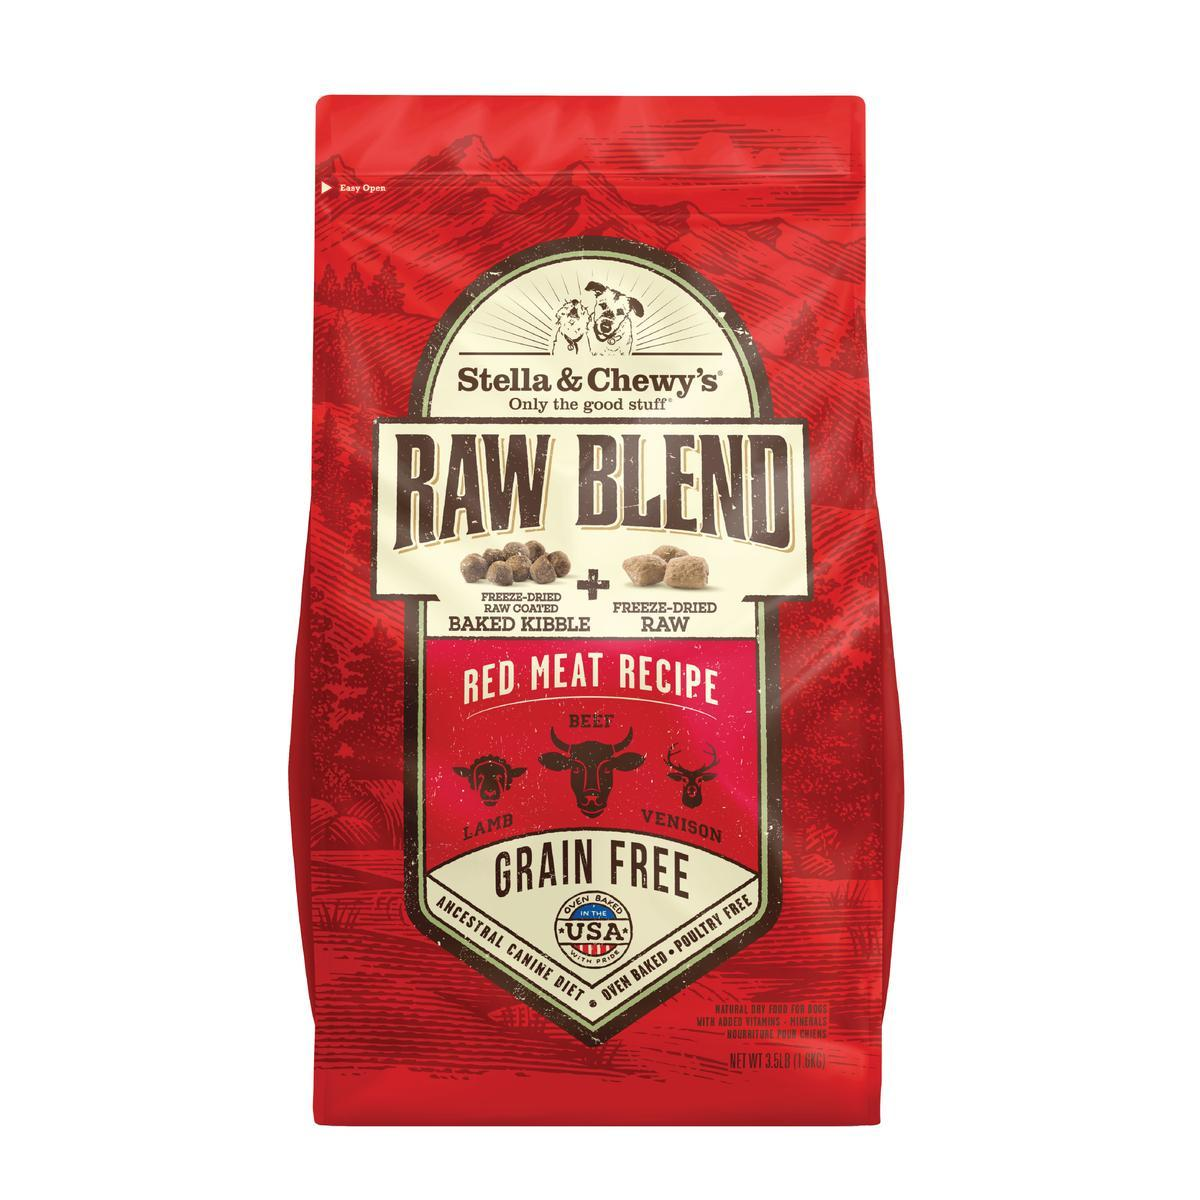 stella and chewys raw blend red meat recipe